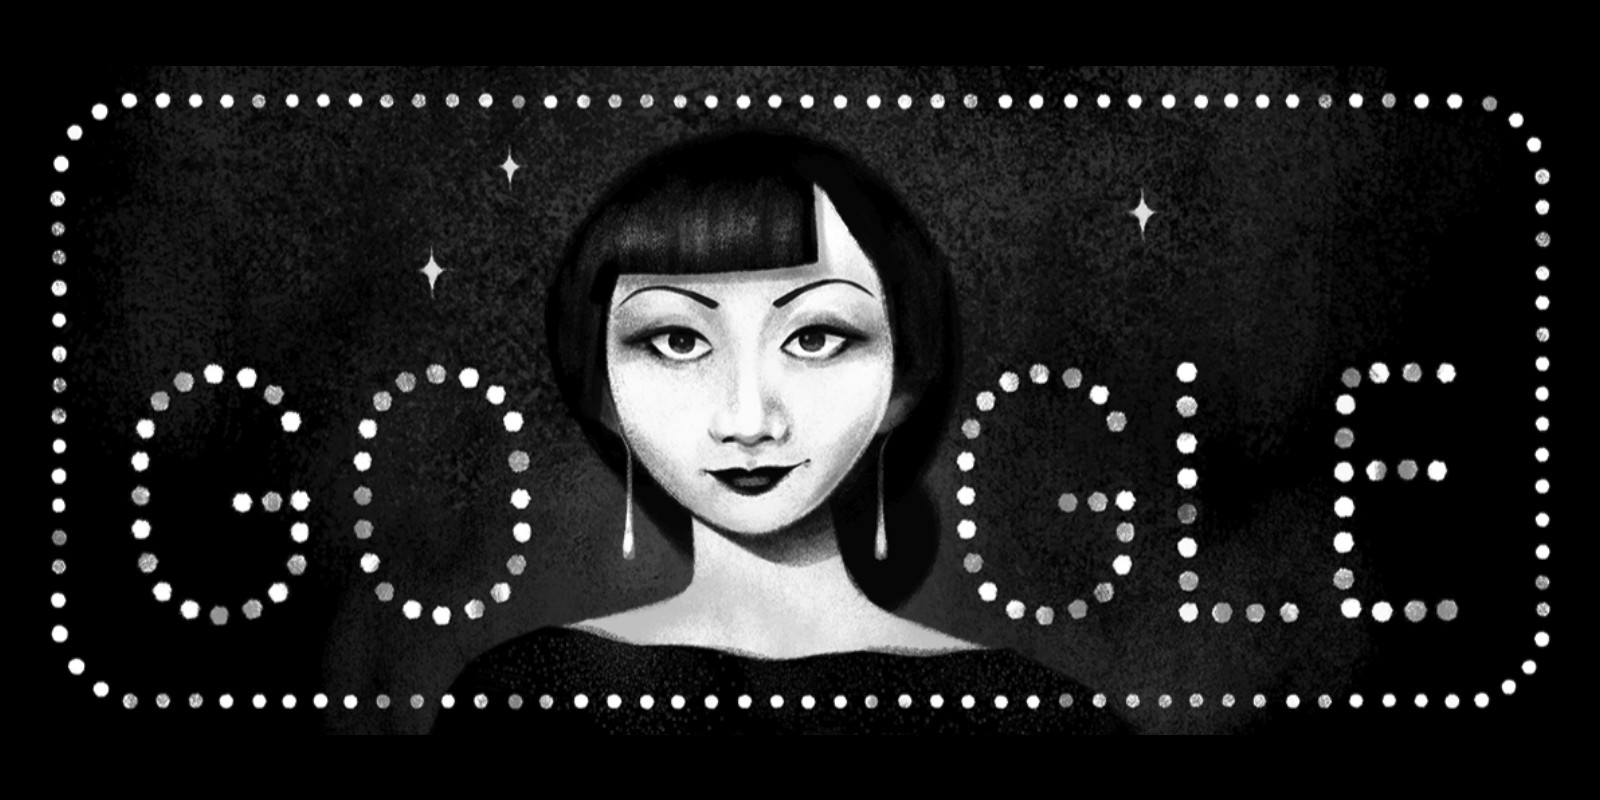 Google Doodle honors the life of Anna May Wong with slideshow